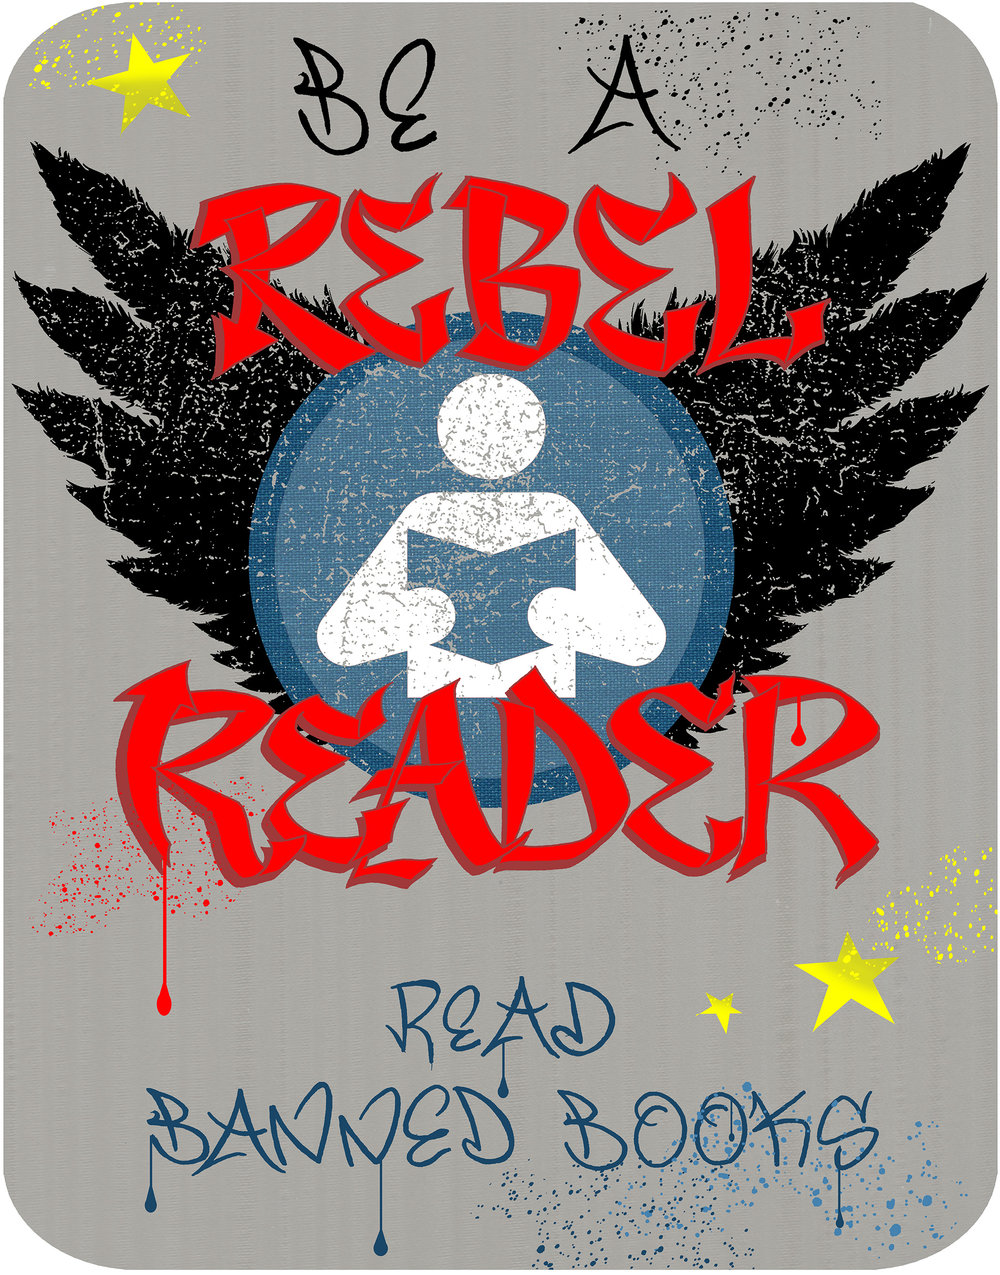 Rebel Reader Banned Books (vertical)